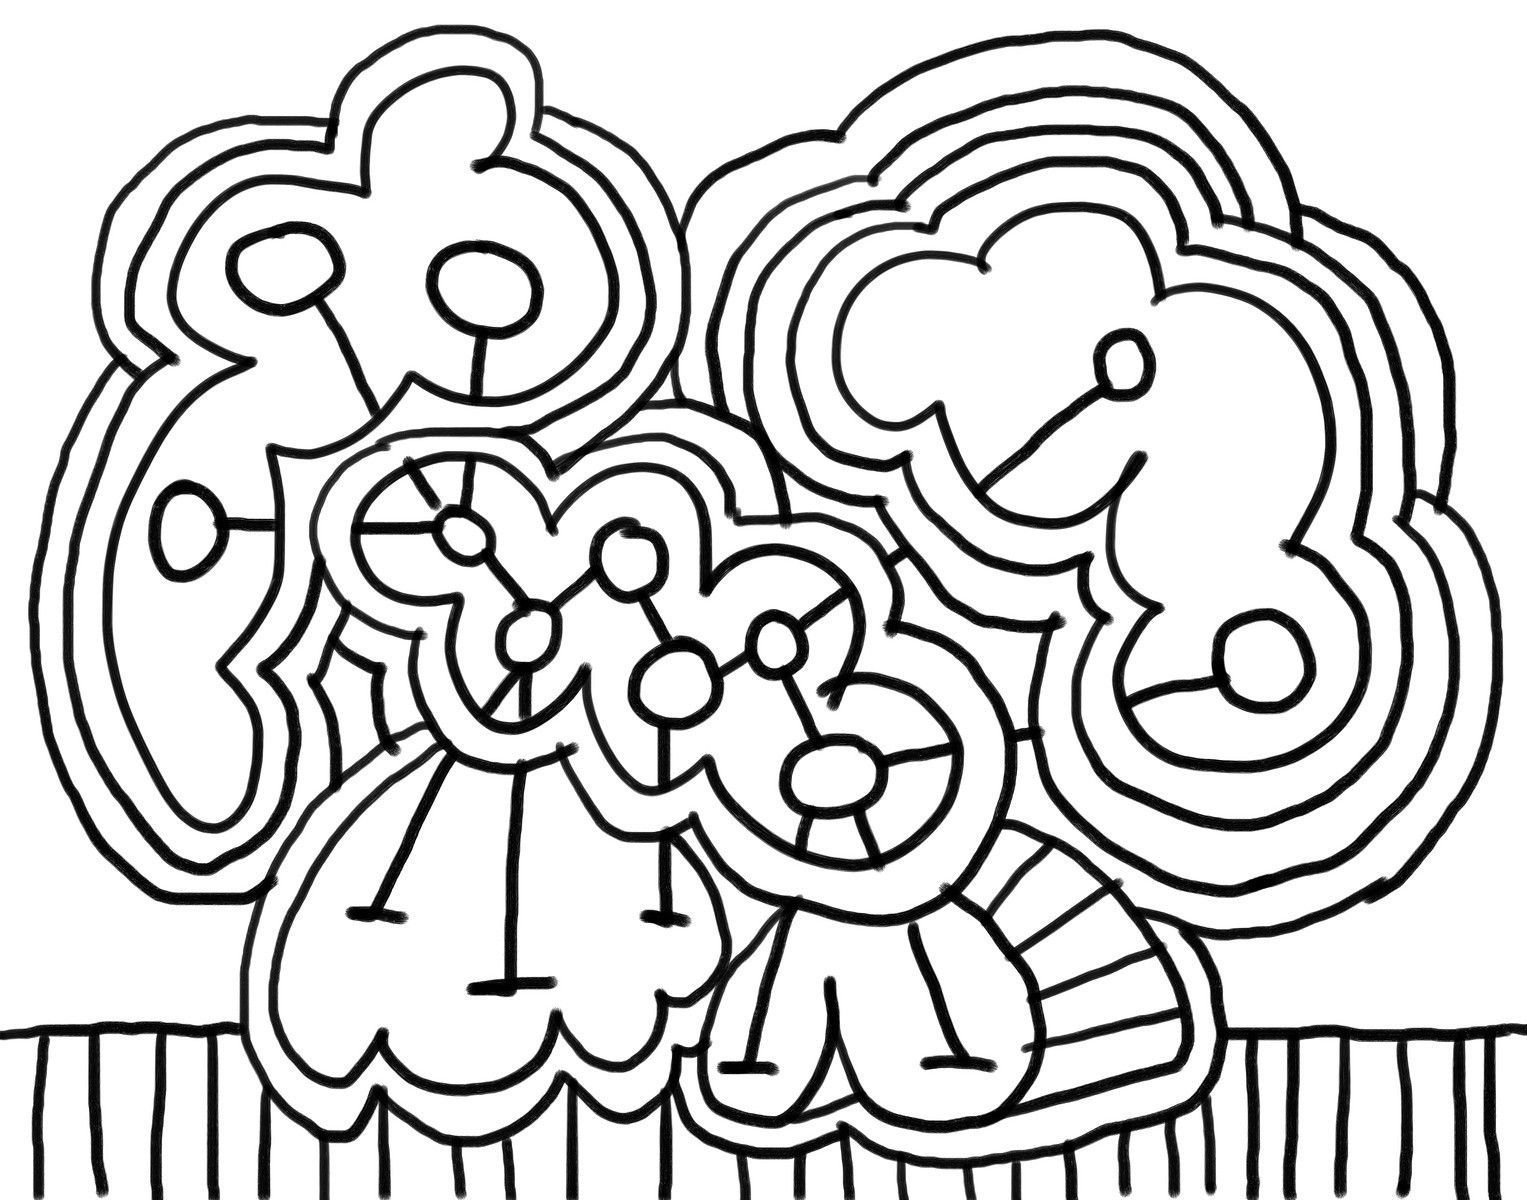 art coloring pages for kindergarteners - photo#42